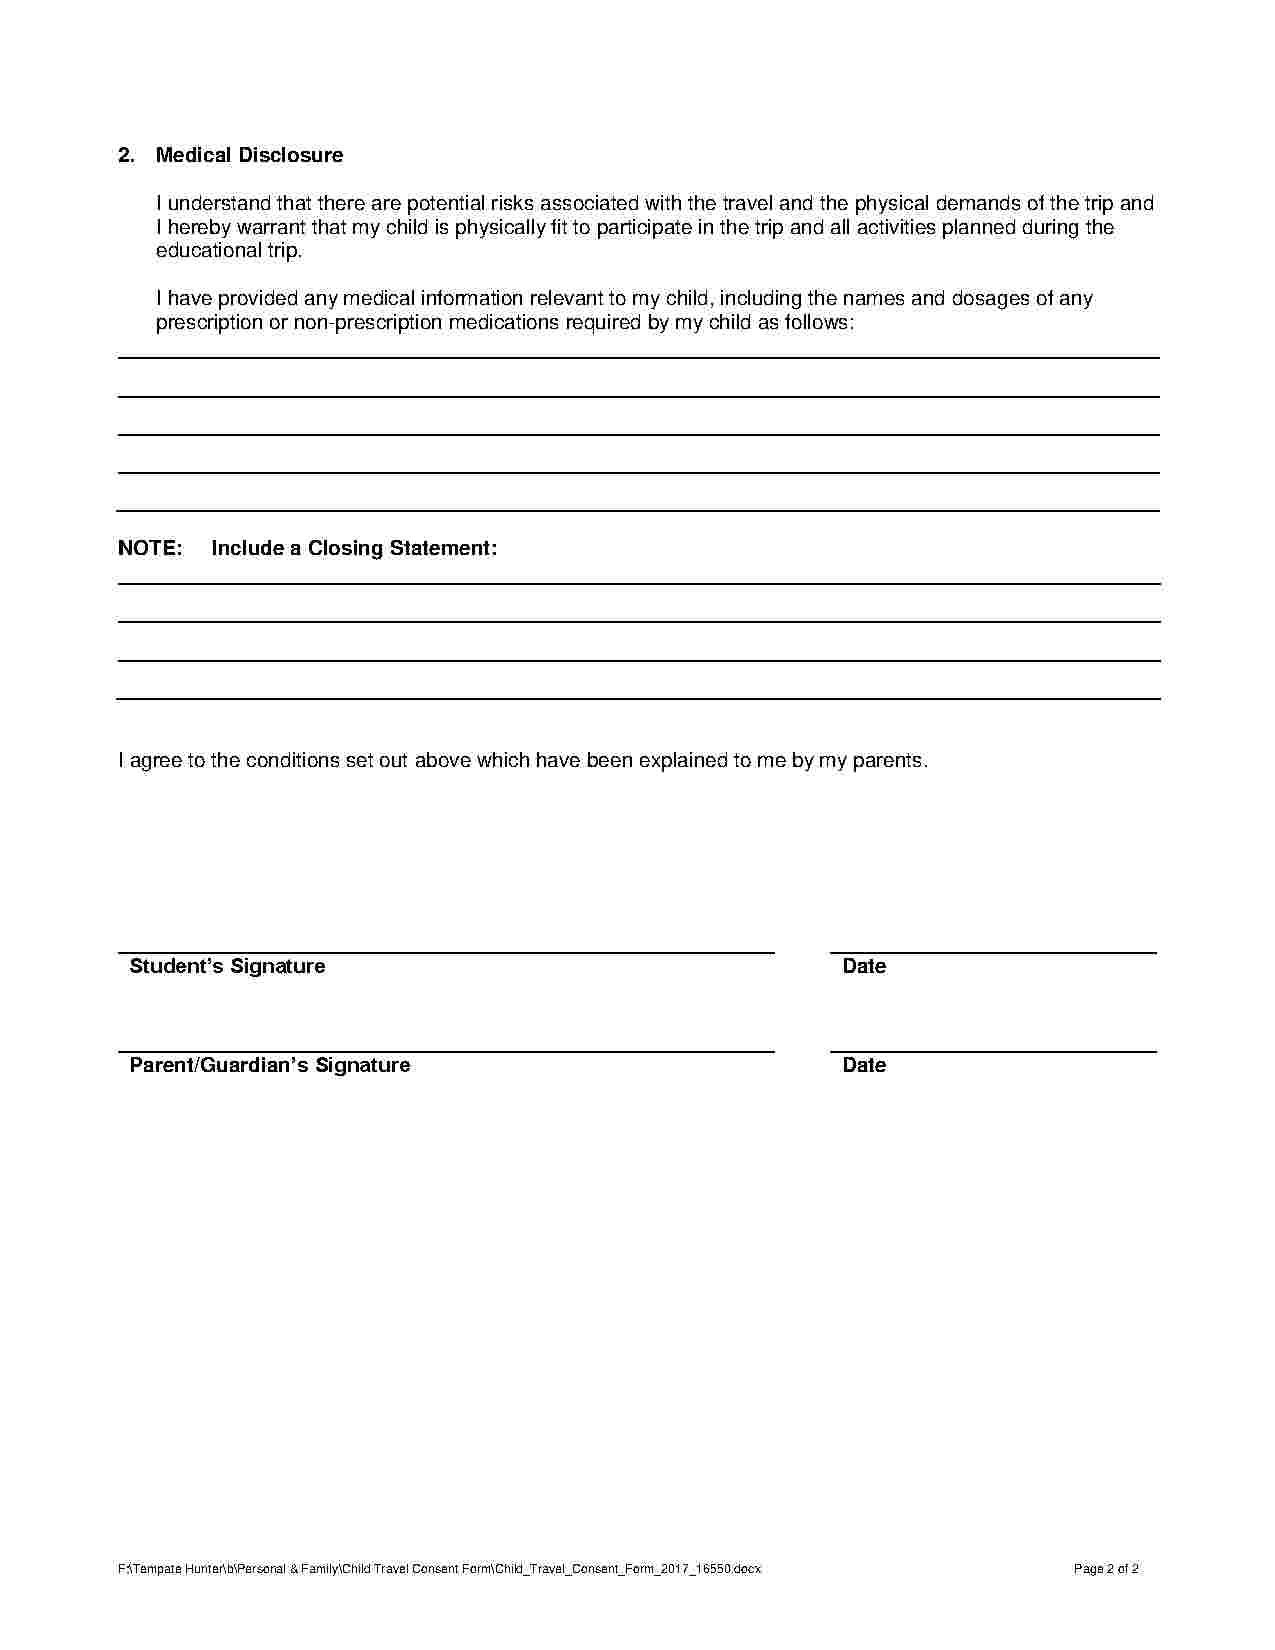 Child Travel Consent Form With Images Travel Consent Form